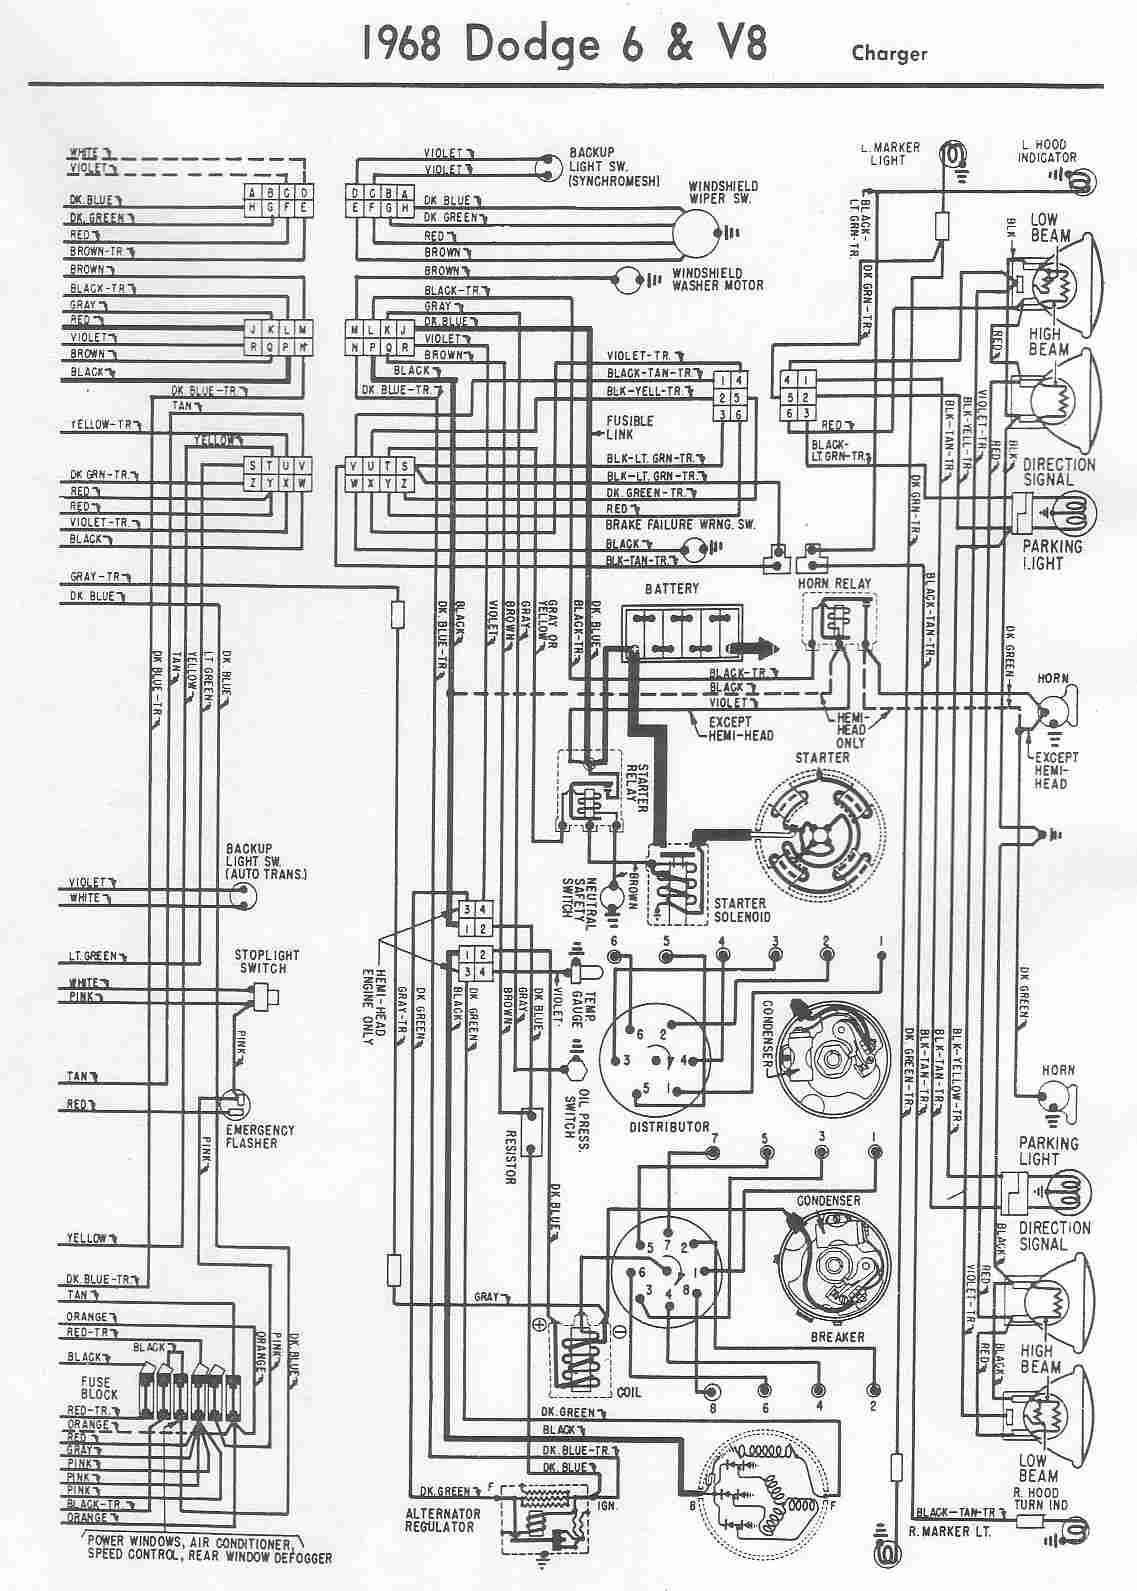 1968 Dodge Dart Schematic Free Wiring Diagram For You C10 Pickup 1972 Dash Harness 35 1967 Gt Gts